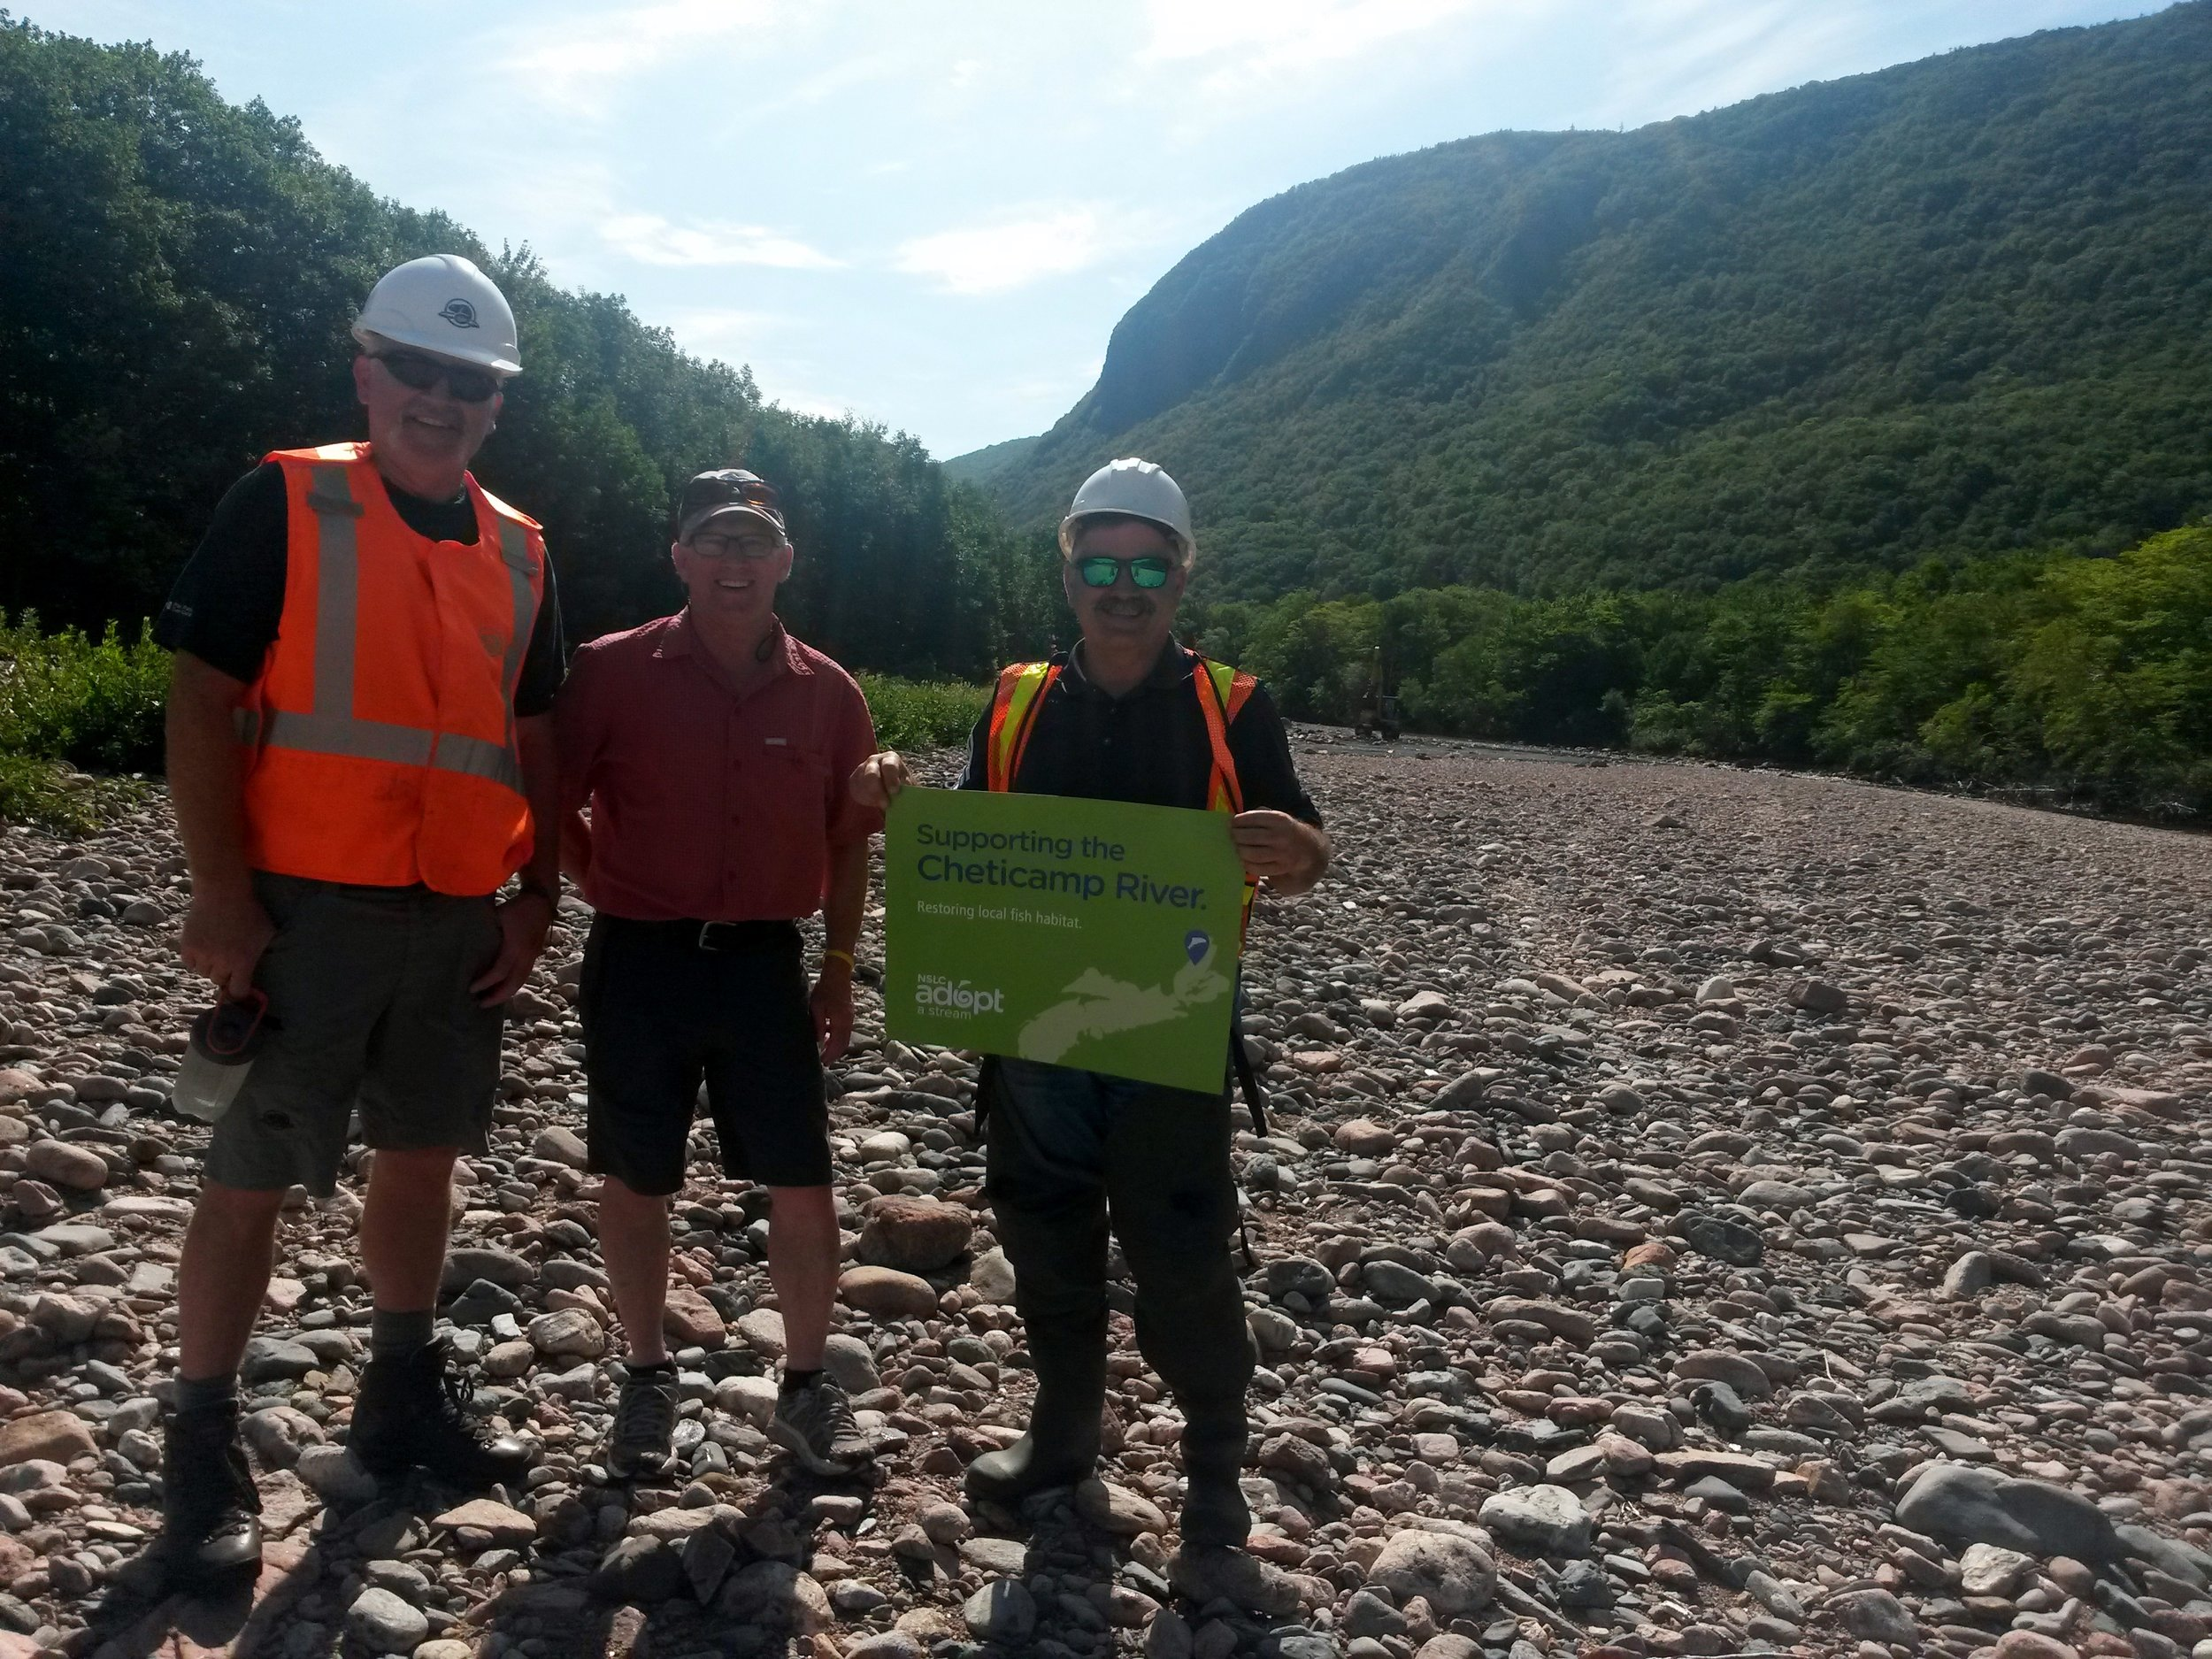 Archie Doucette (Parks Canada), Rene Aucoin (CRSA President), and Charles MacInnis (Project consultant) (left to right) pose with signage from the Nova Scotia Salmon Association's NSLC Adopt-a-Stream Program, one of the funders of the Cheticamp River restoration project.